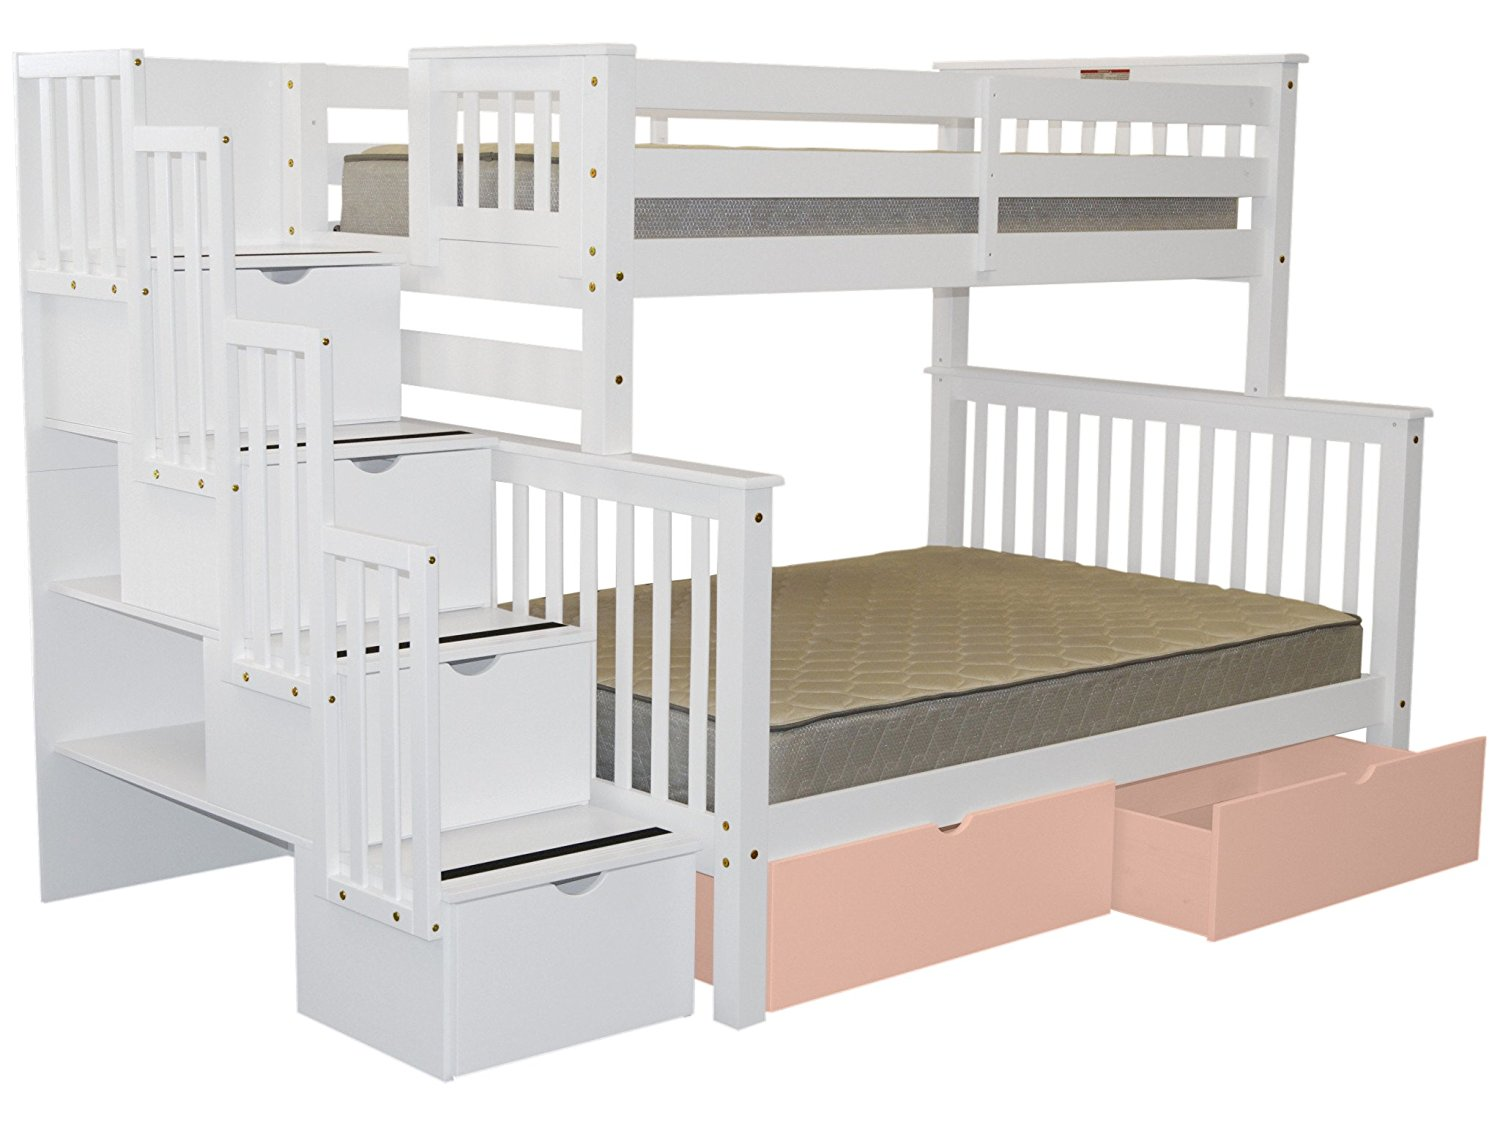 ea80c3b60199af Bedz King Stairway Bunk Bed Twin over Full with 4 Drawers in the Steps and 2  Under Bed Drawers in Pink, White